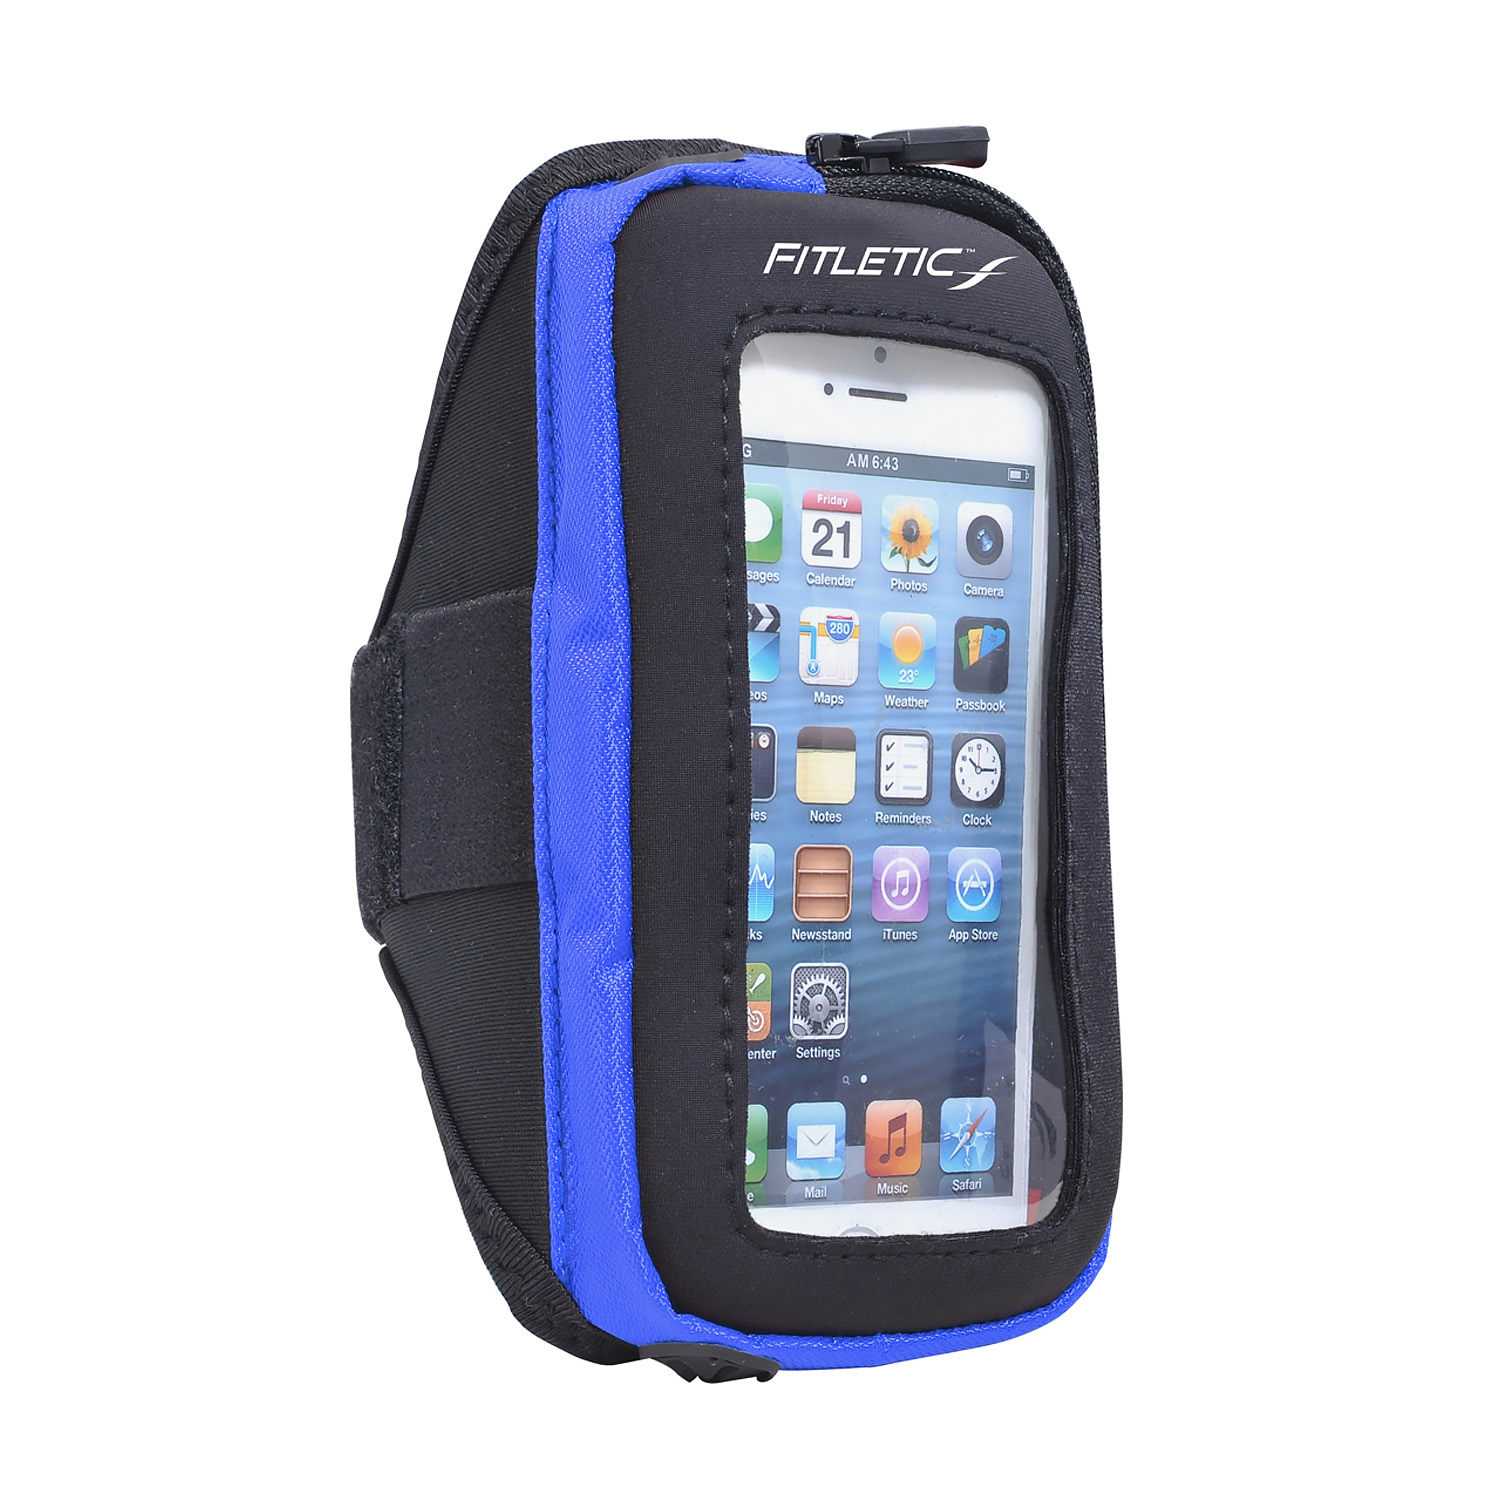 Fitletic Smart Phone Arm Band with Window Black/Blue-S/M